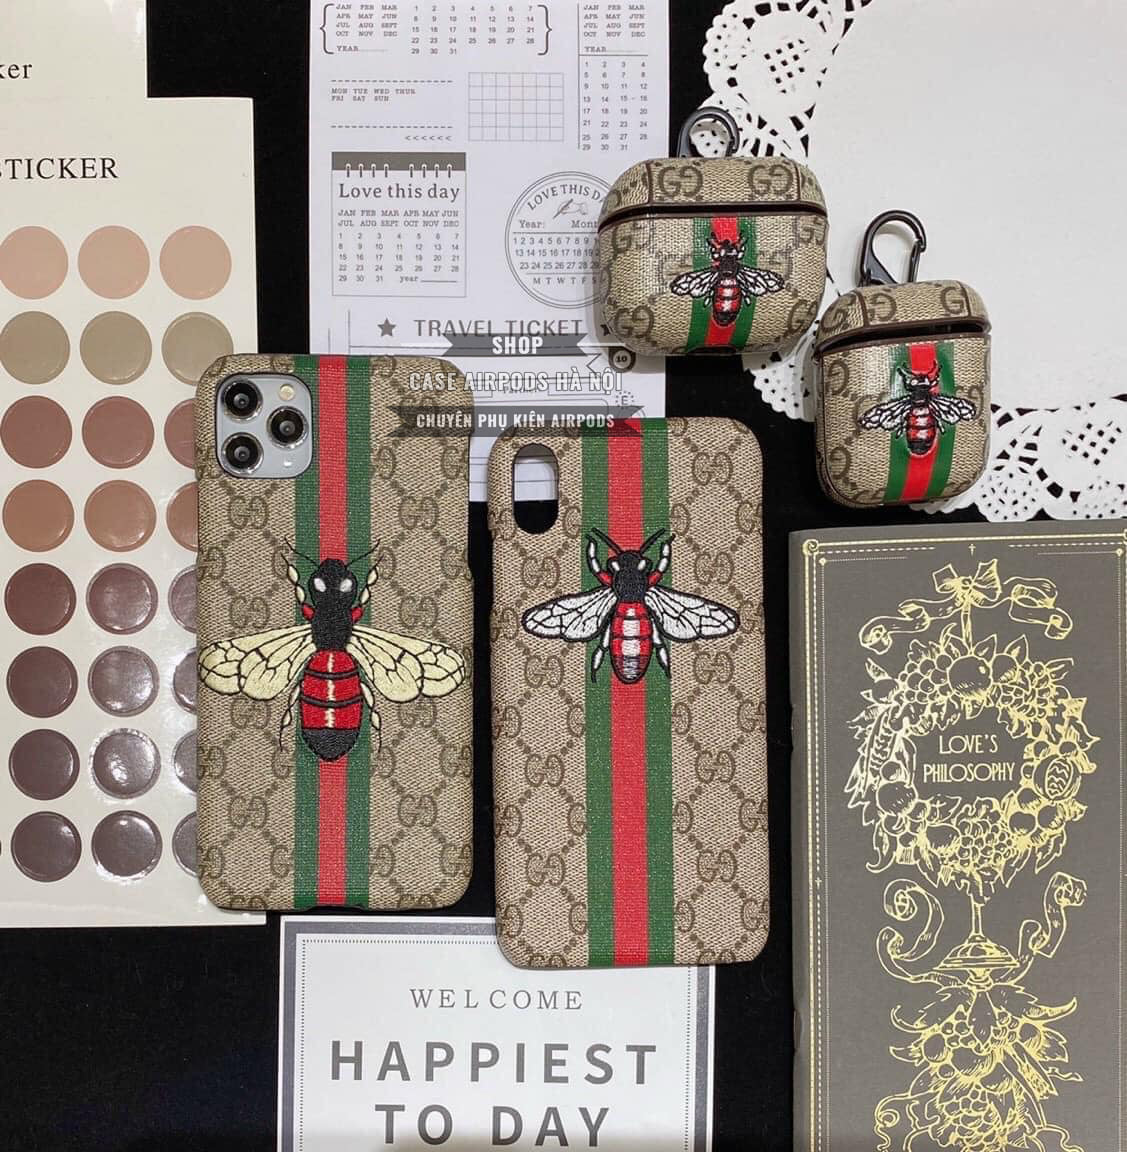 Combo ốp lưng iPhone Case Airpods Gucci Ong Thêu